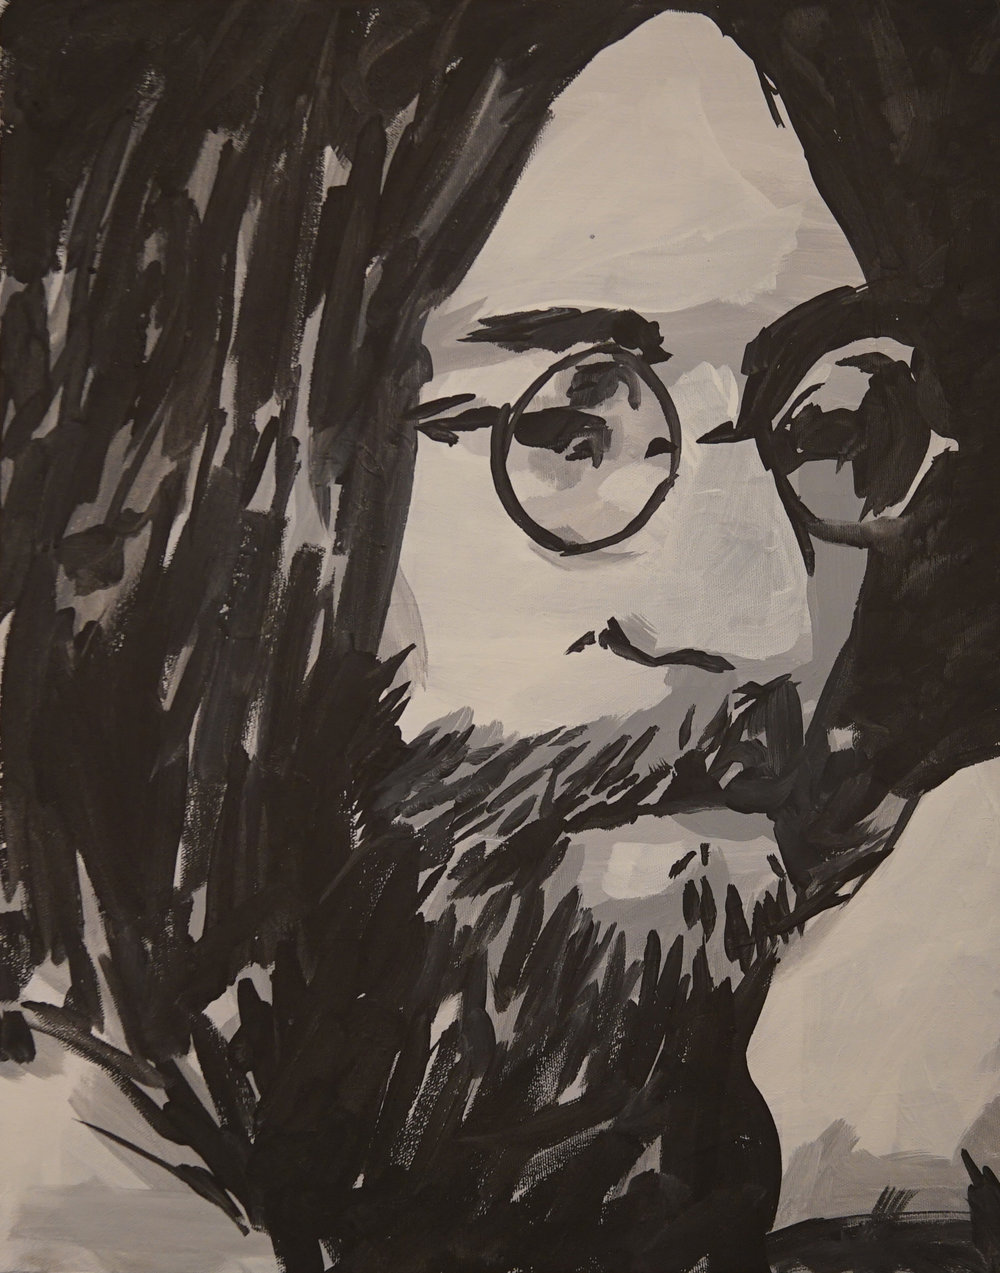 """John Lennon"" (BW Portrait Series) Acrylic on canvas. 16x20. 2018. $270"